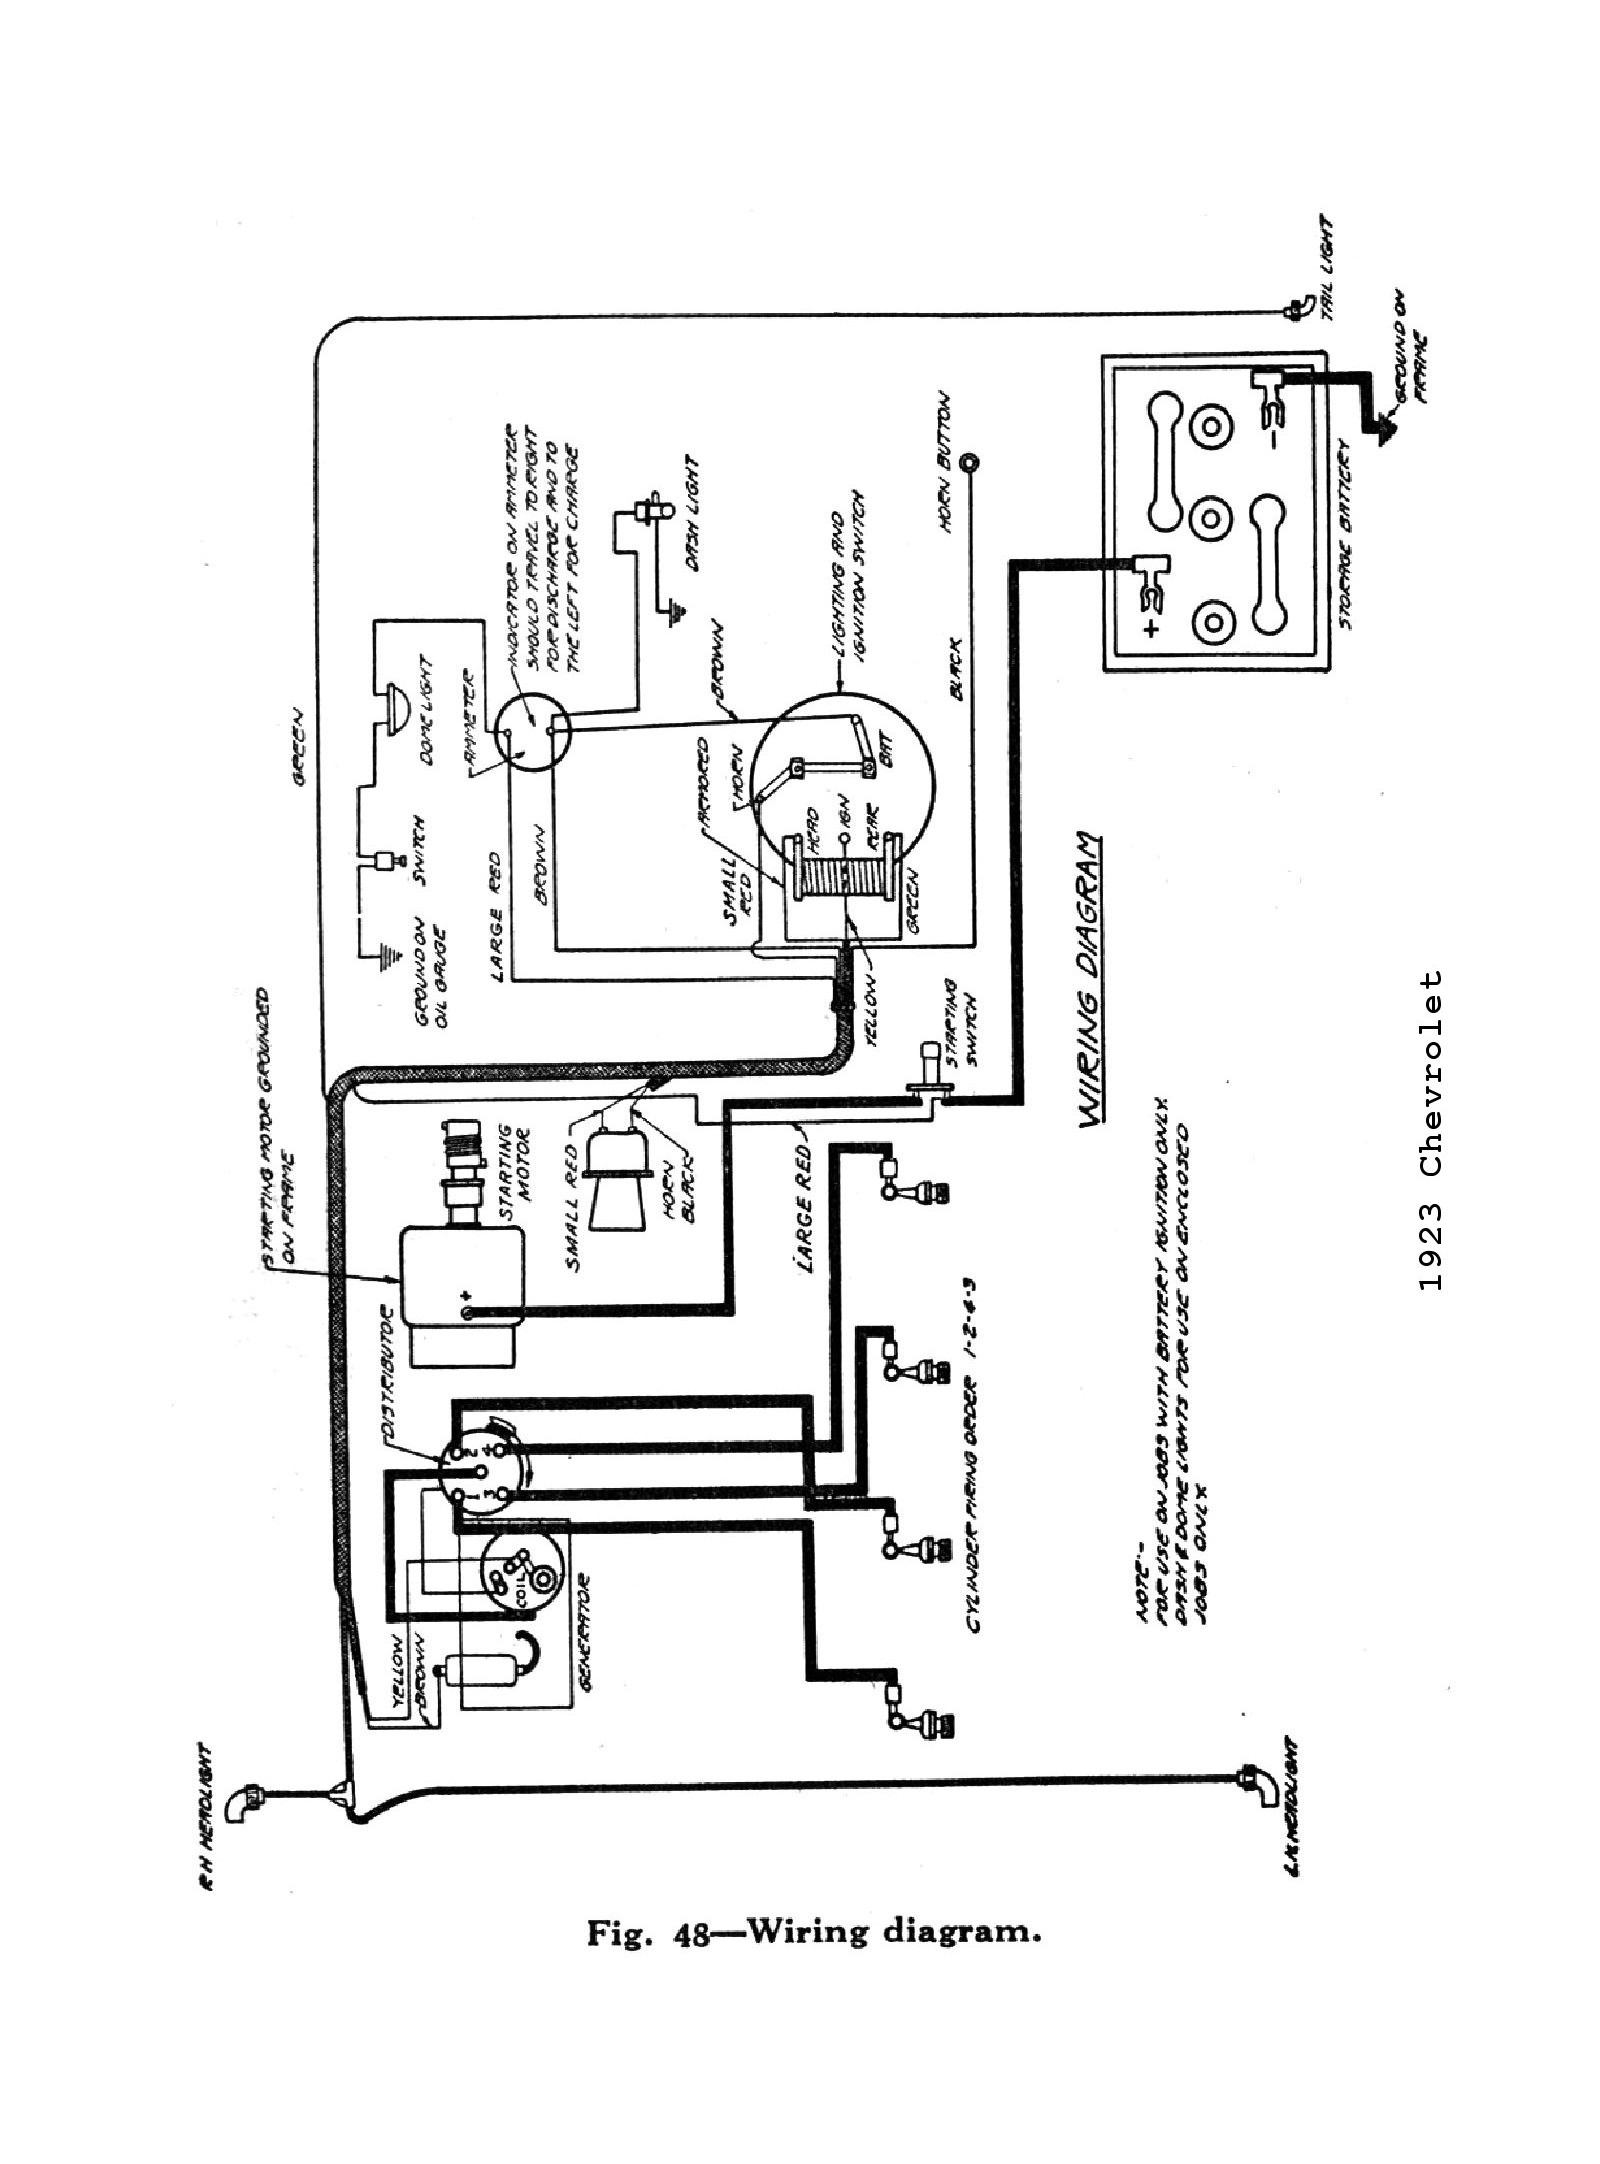 Chevy wiring diagrams 1923 general wiring swarovskicordoba